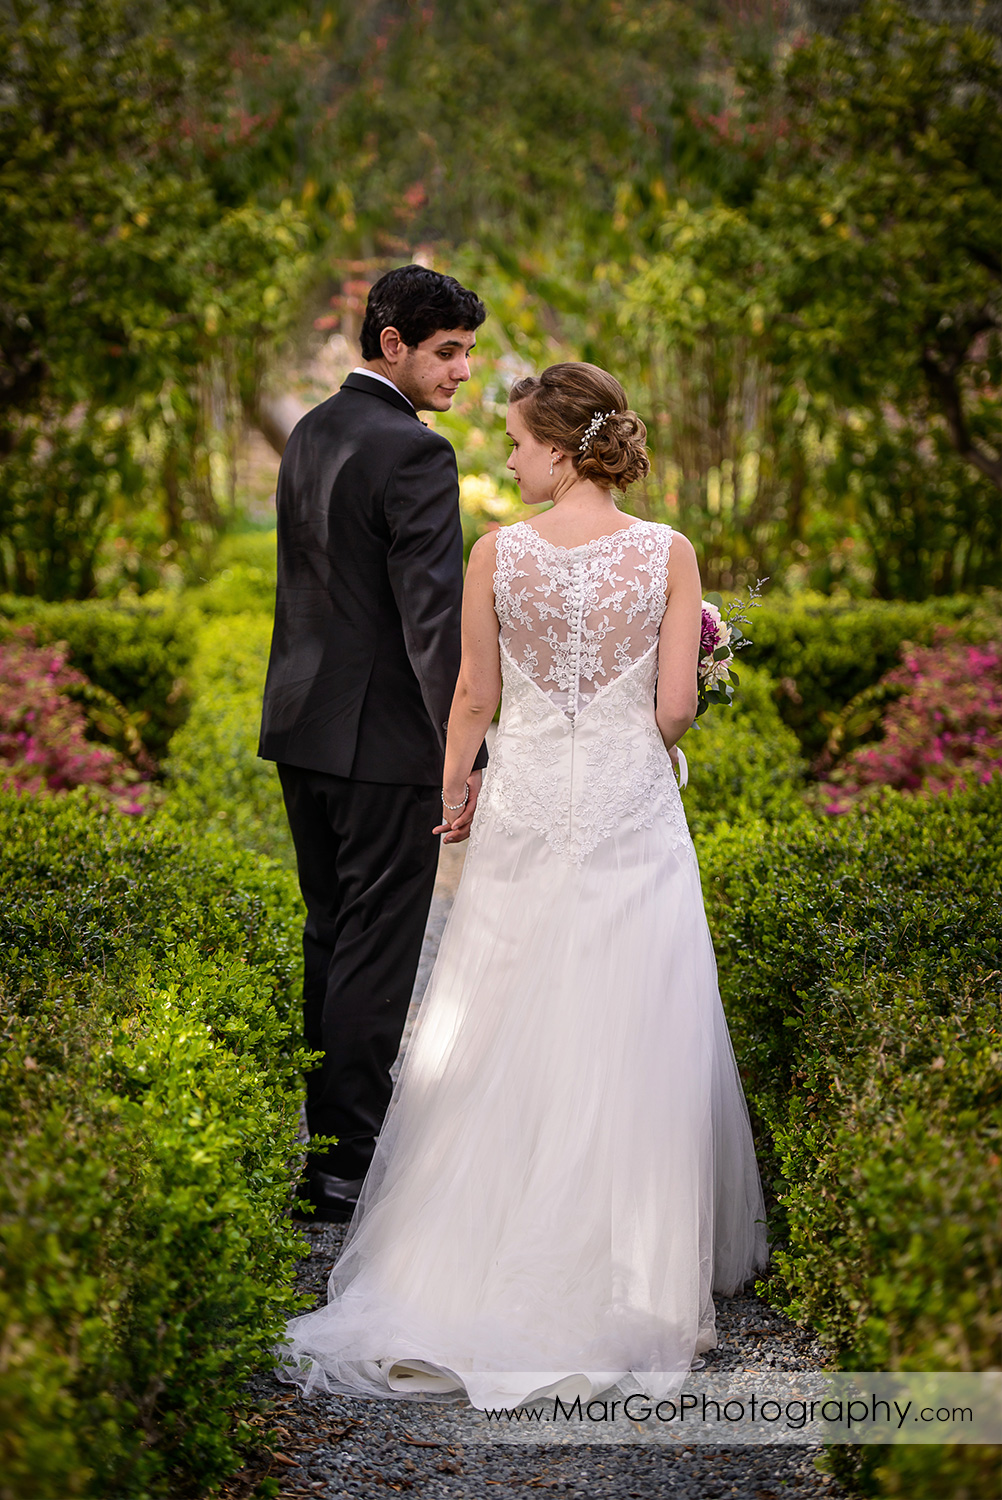 full body portrait of bride and groom walking down green aisle during bridal session at Shinn Historical Park and Arboretum in Fremont